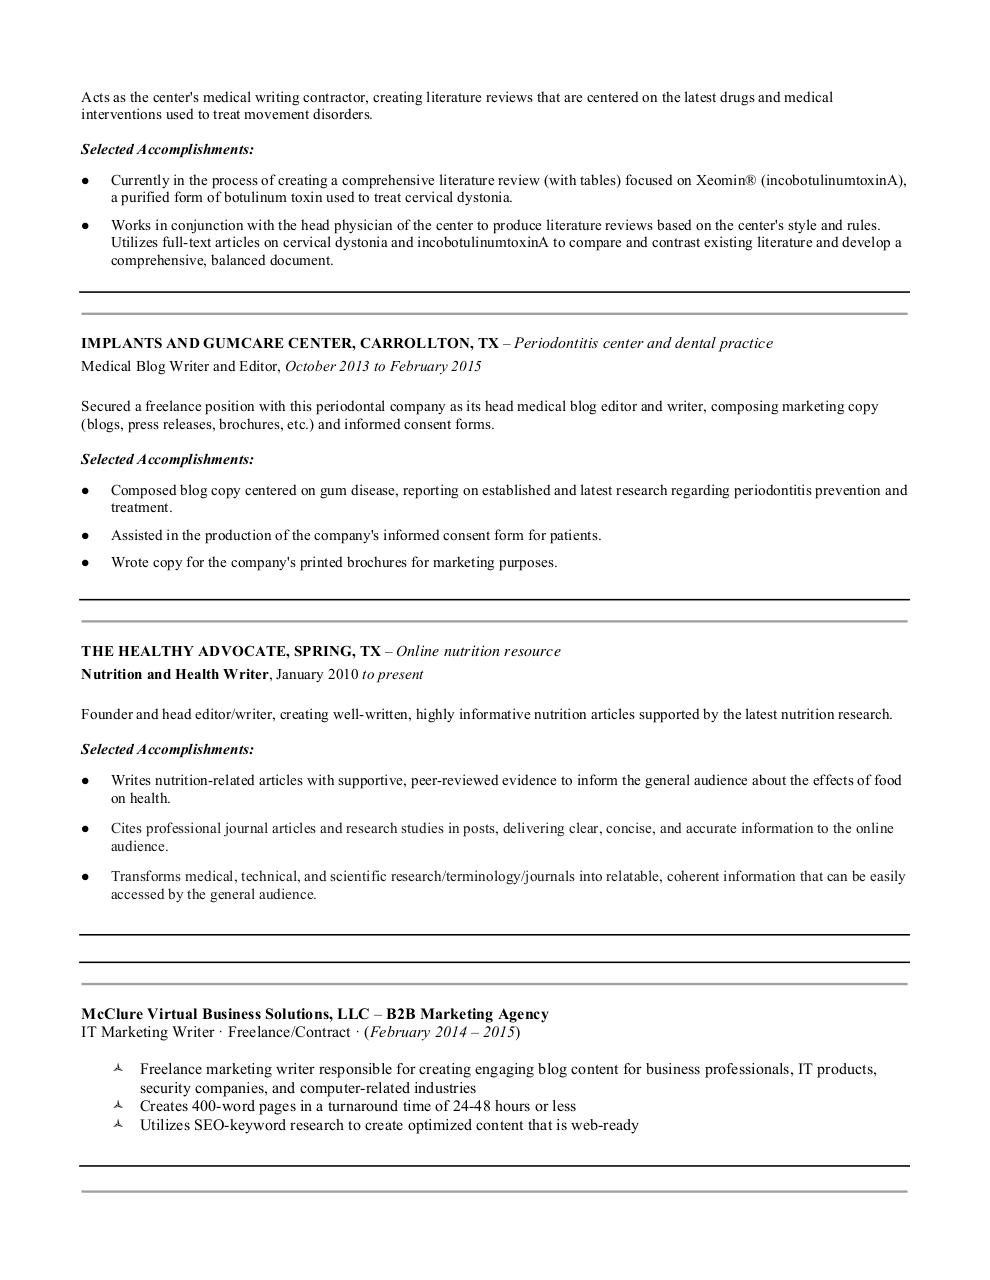 brandon may freelance writer cv doc - brandon may freelance writer cv pdf